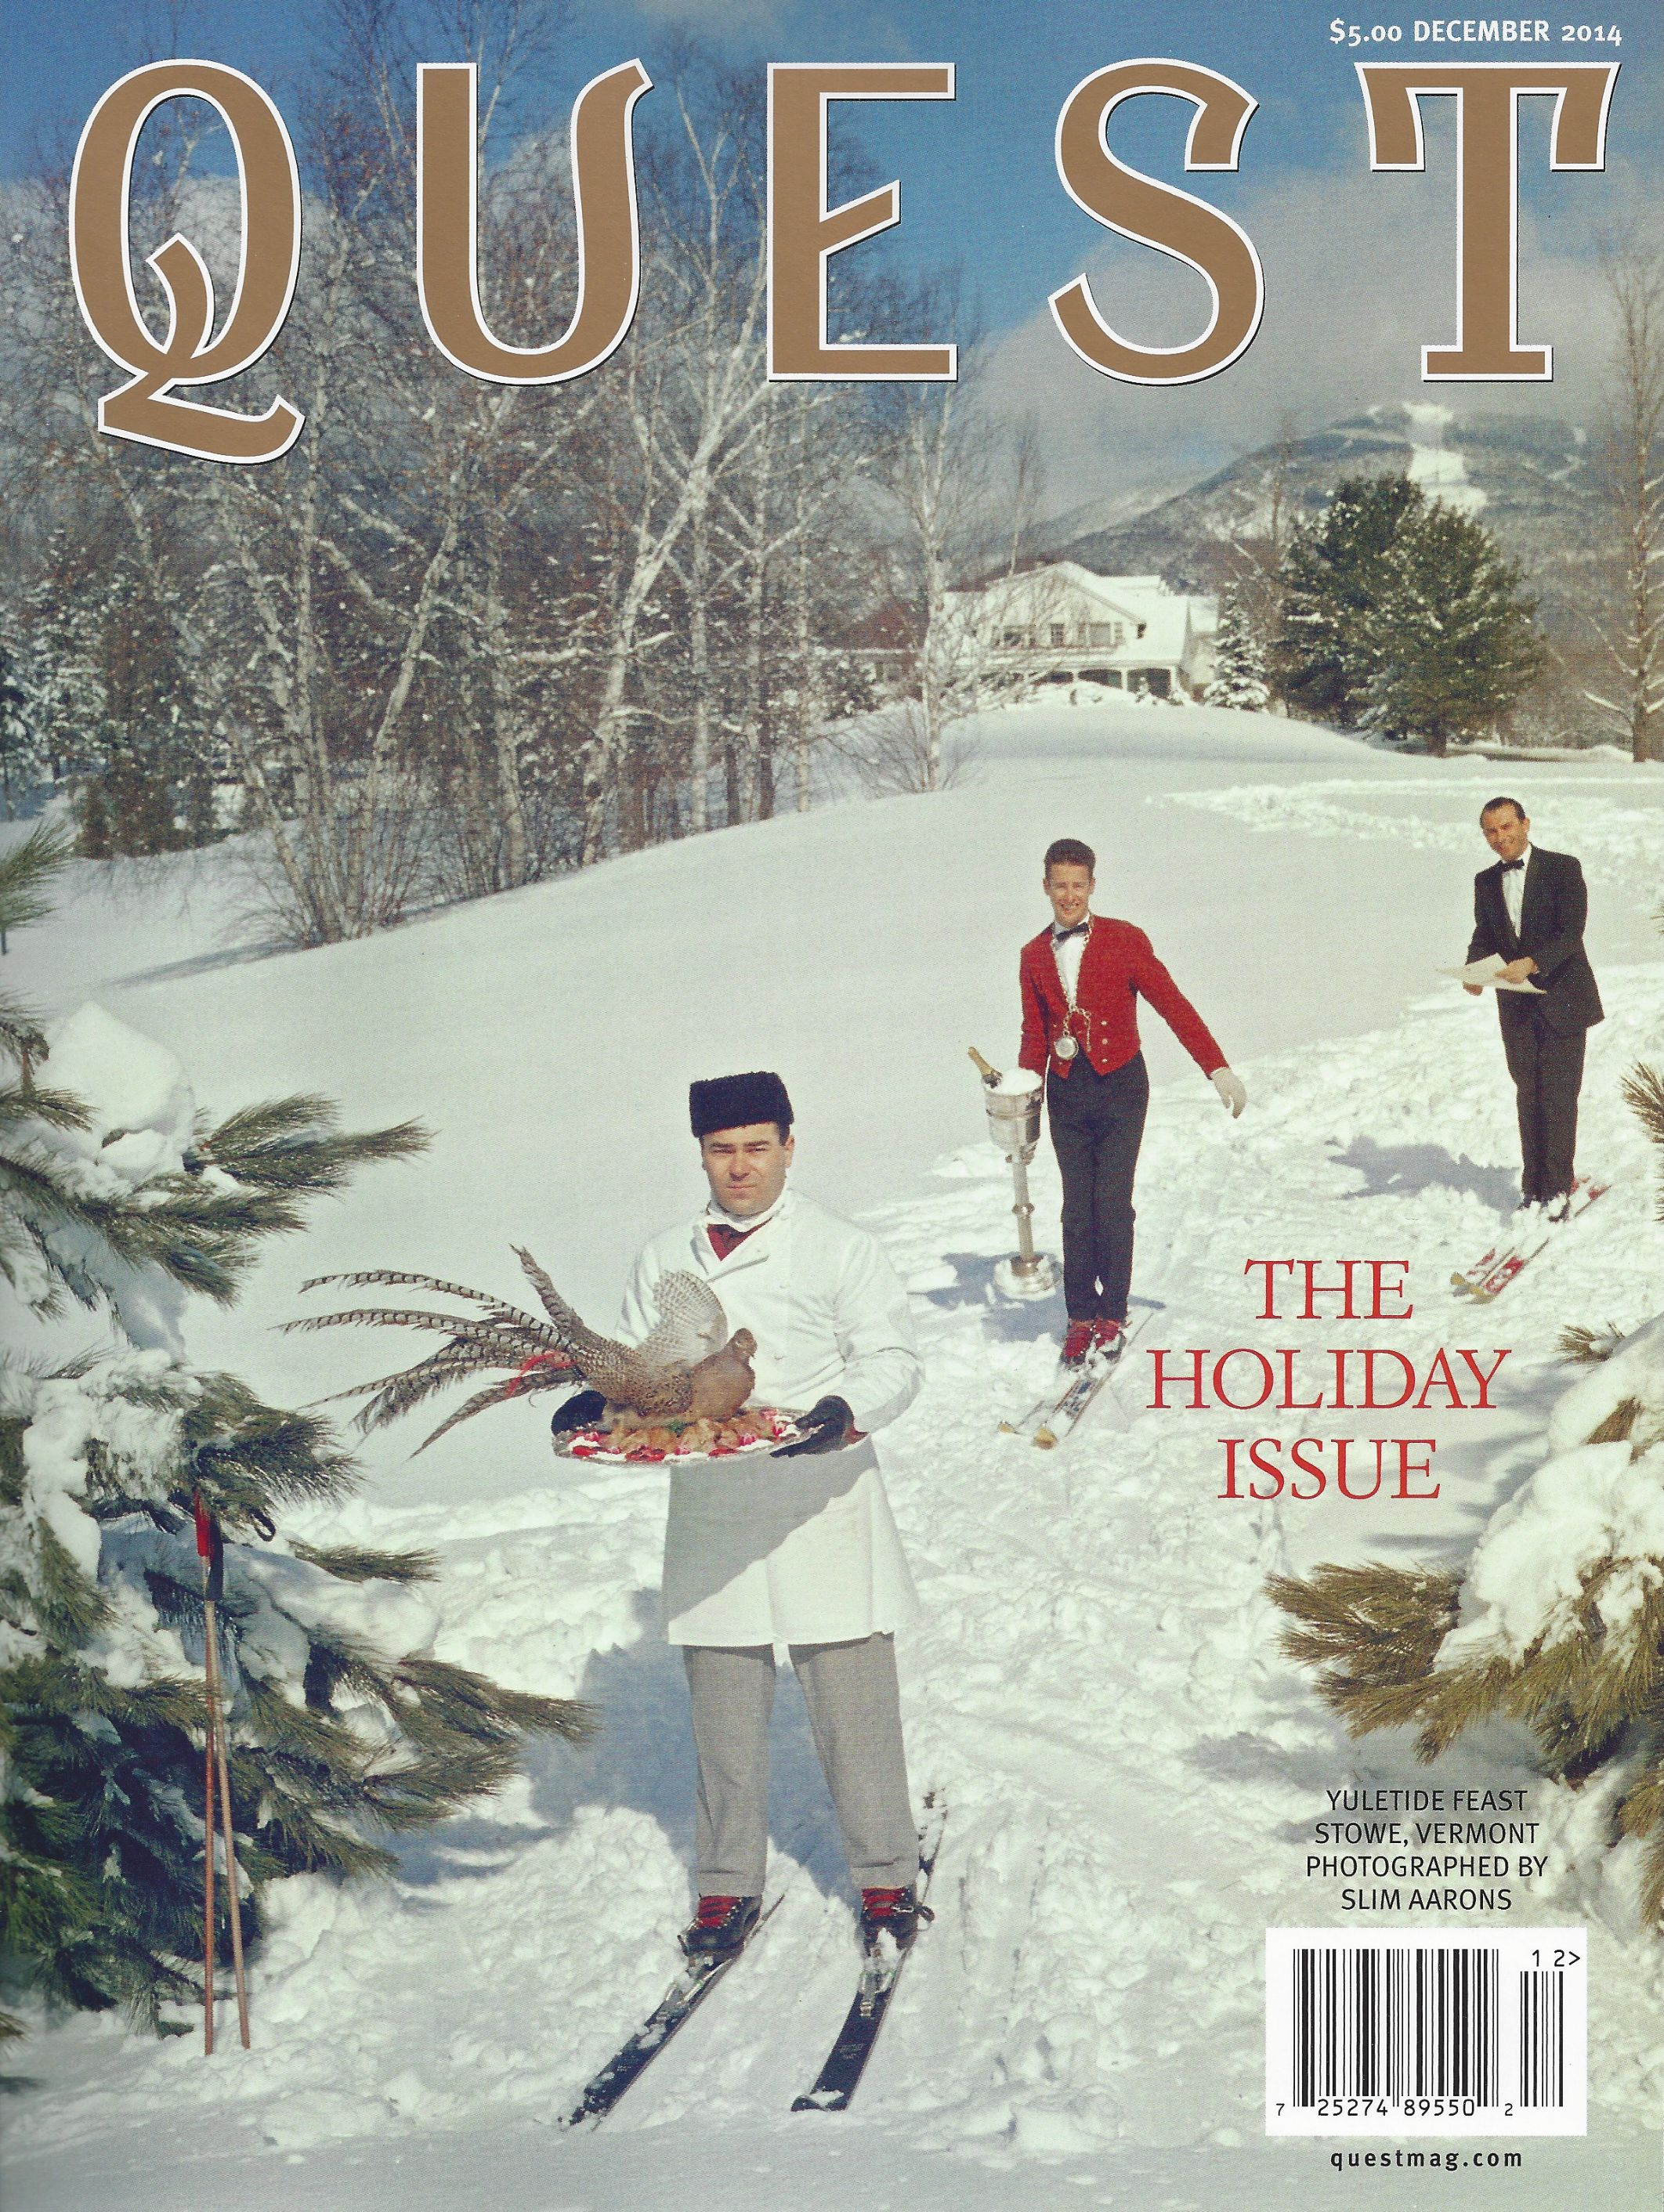 Quest - The Holiday Issue